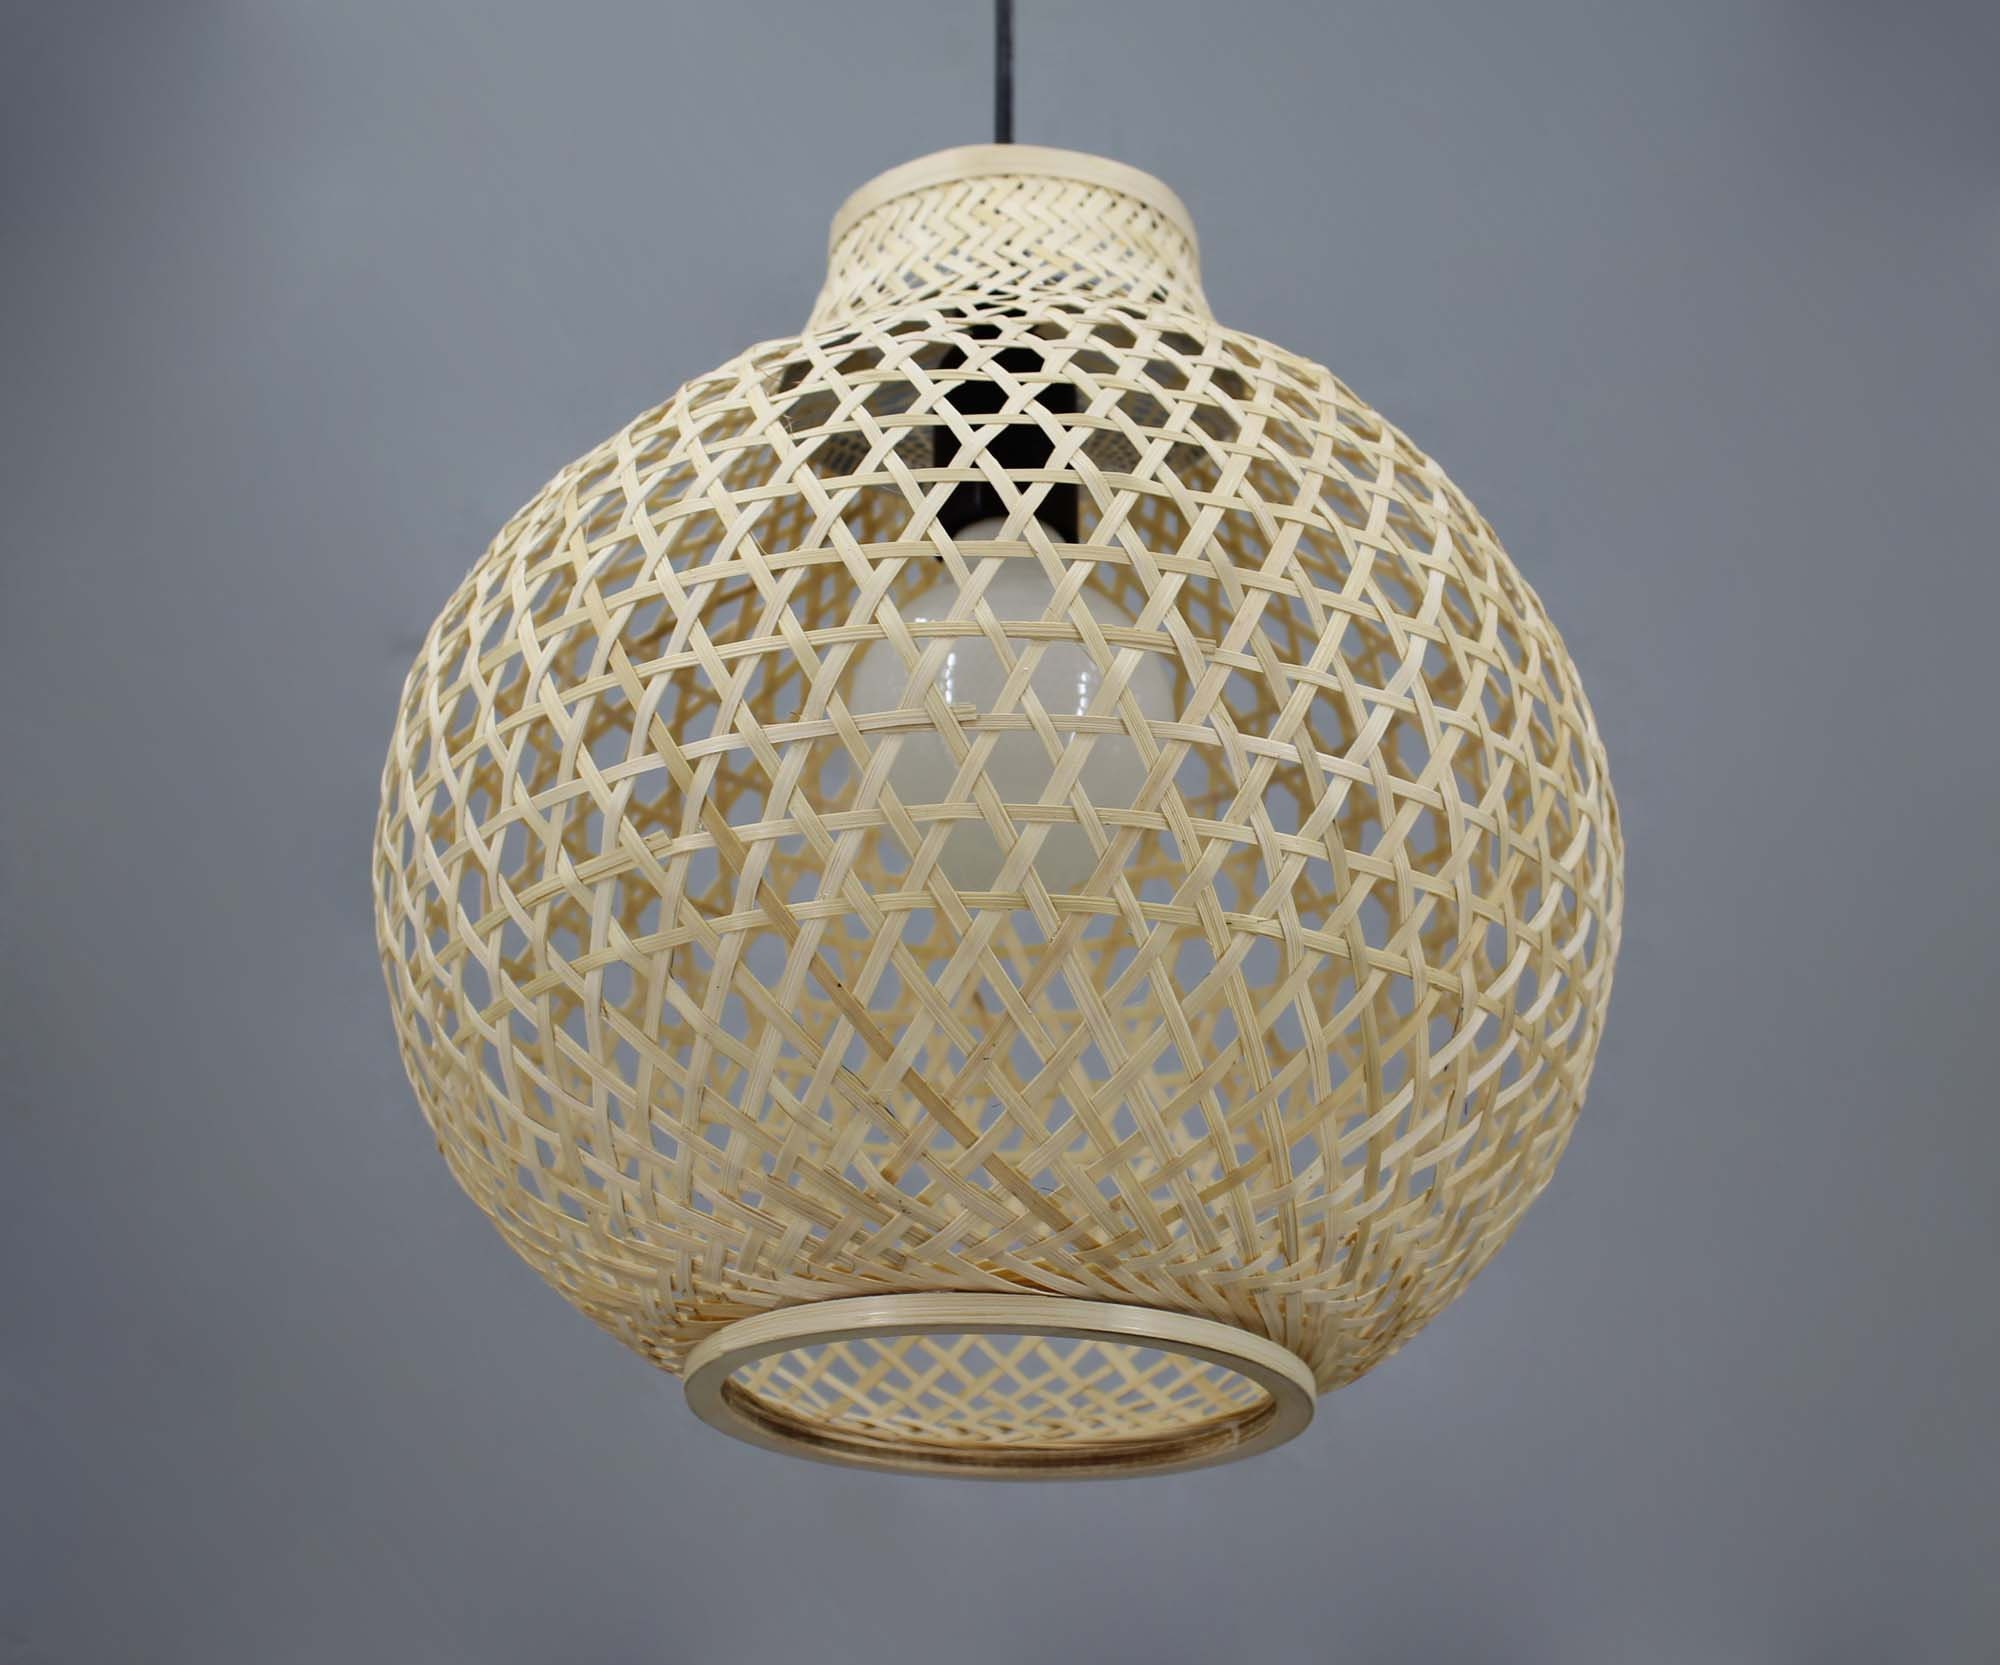 Natural Bamboo Gourd-shaped Pendant Lights  Decorative